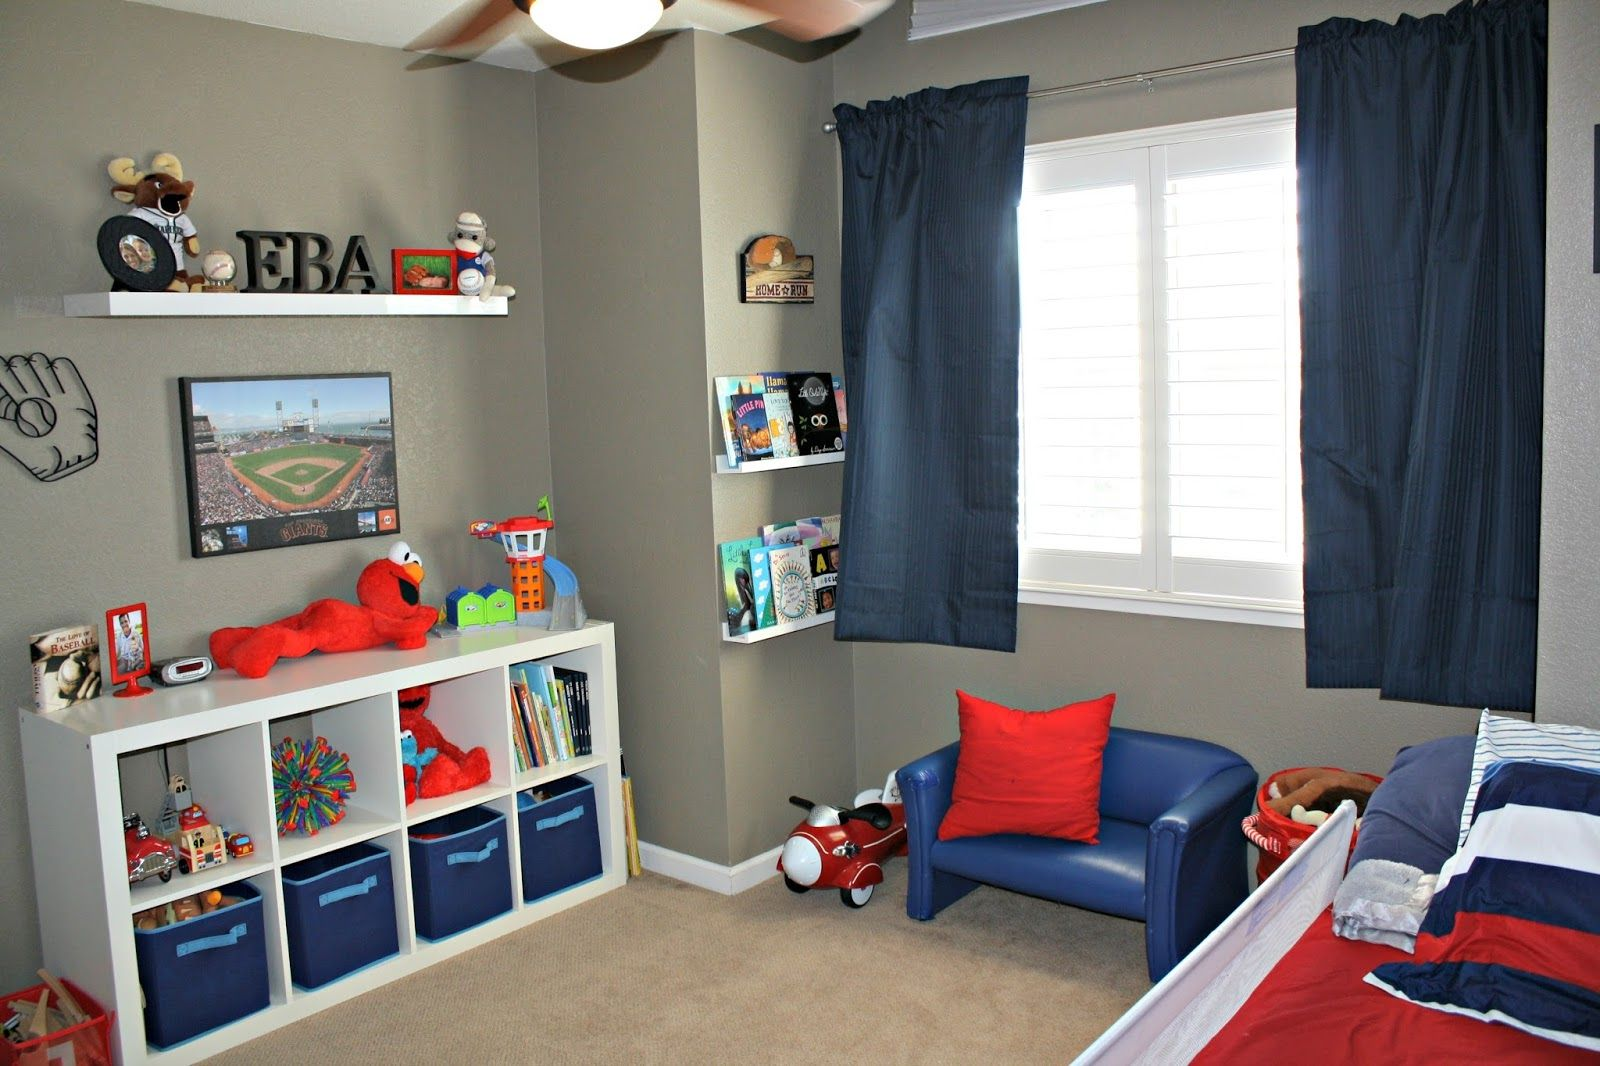 20 Sports Themed Boys Room Wall Art Ideas For Bedroom Check More At Http Davidhyounglaw Co Modern Toddler Bedroom Kids Bedroom Designs Boy Toddler Bedroom